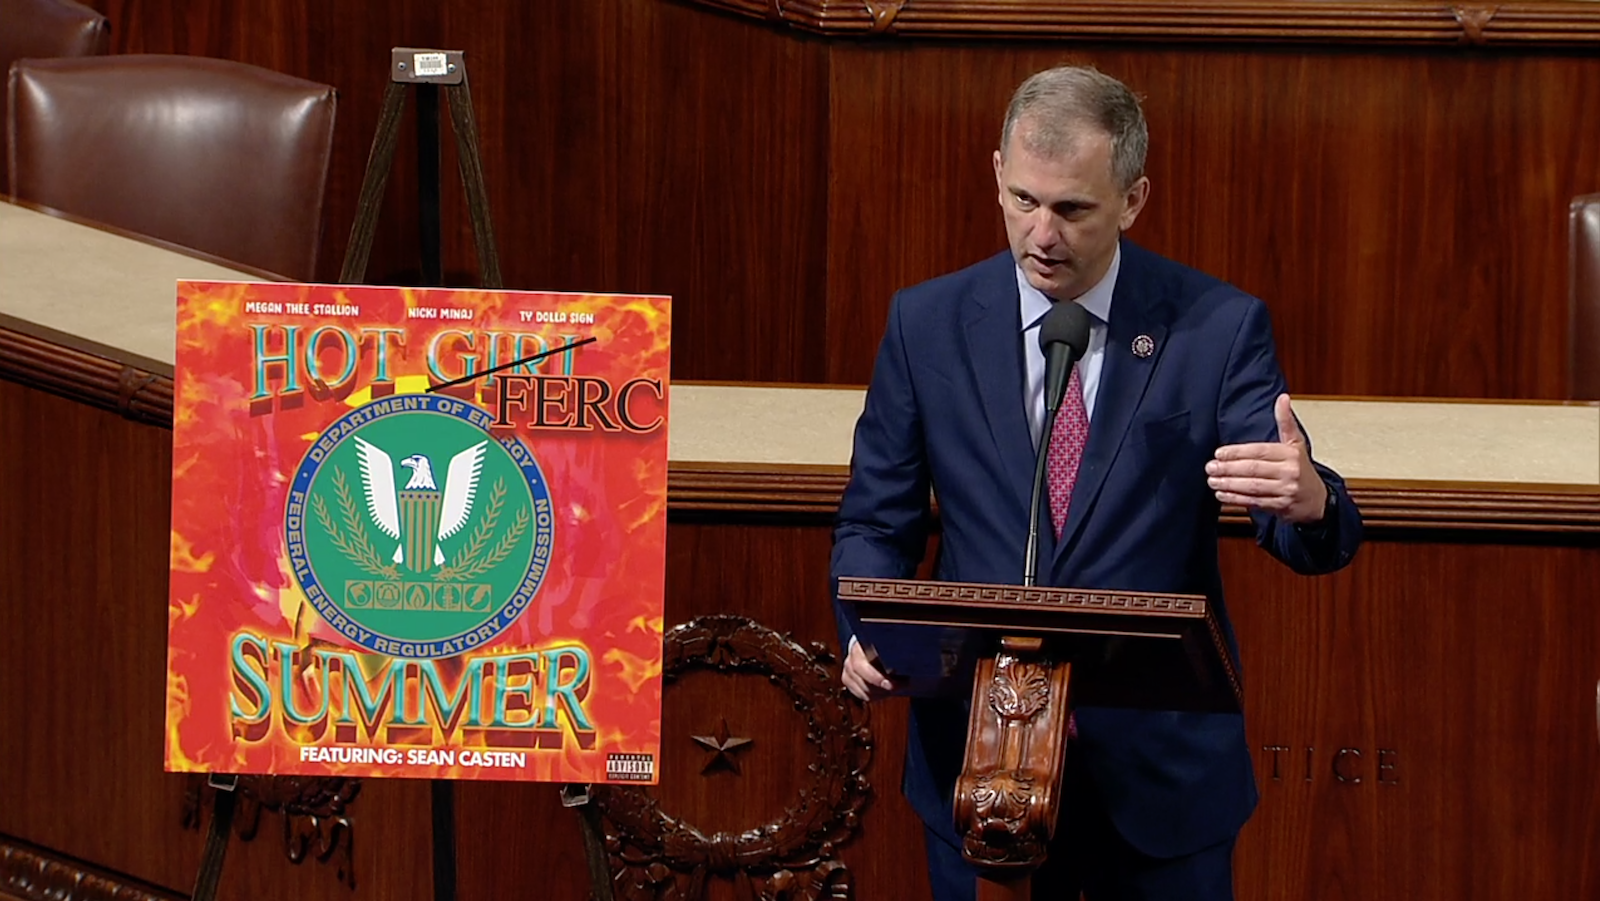 Rep. Sean Casten stands on the House floor introducing his hot FERC summer campaign